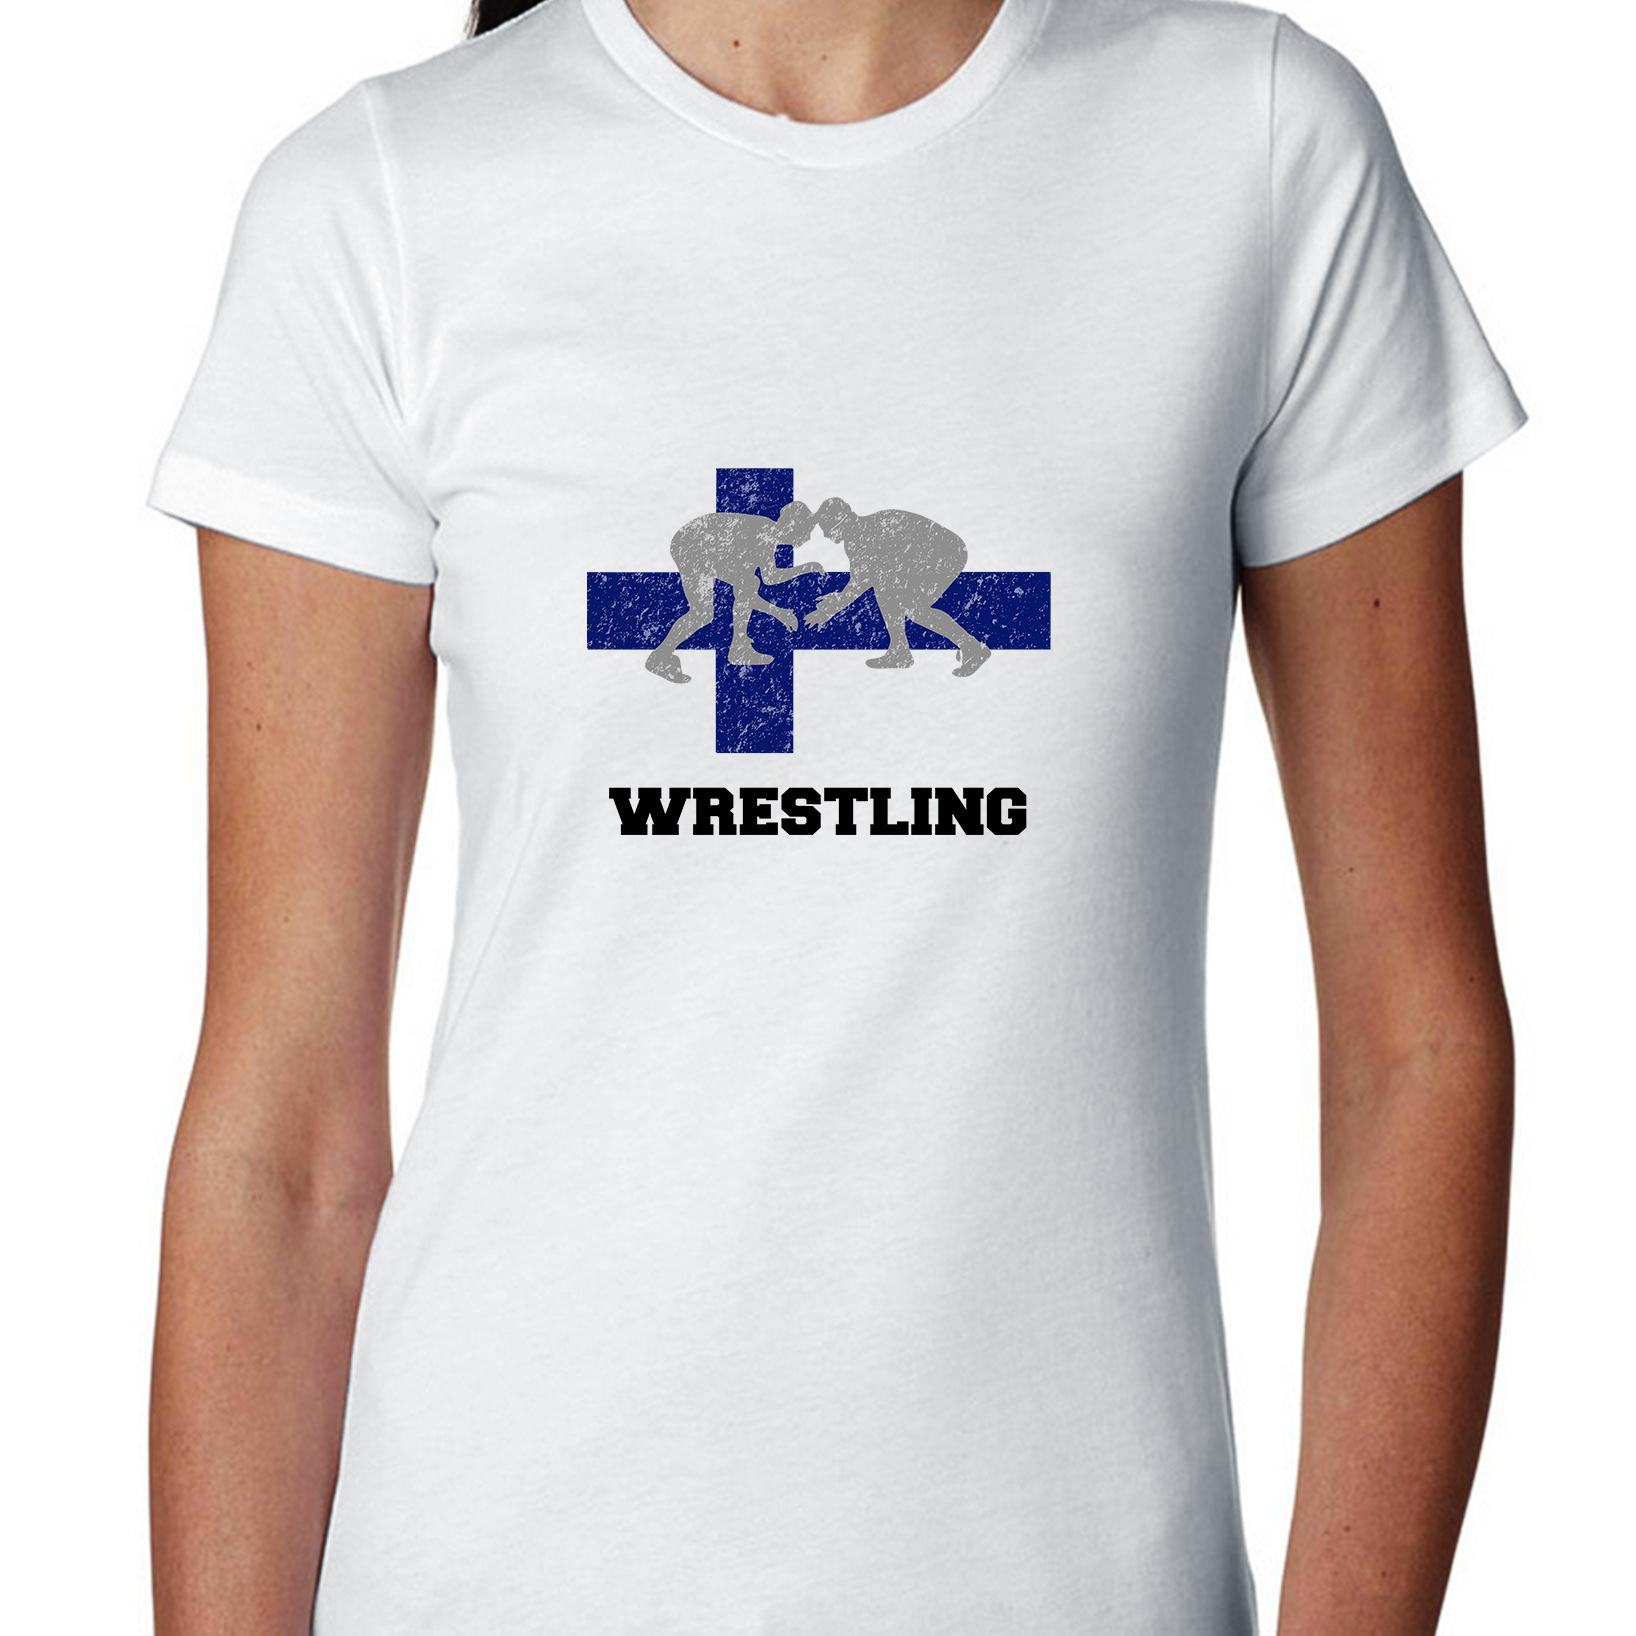 Finland Olympic Wrestling Flag Silhouette Women's Cotton T-Shirt by Hollywood Thread